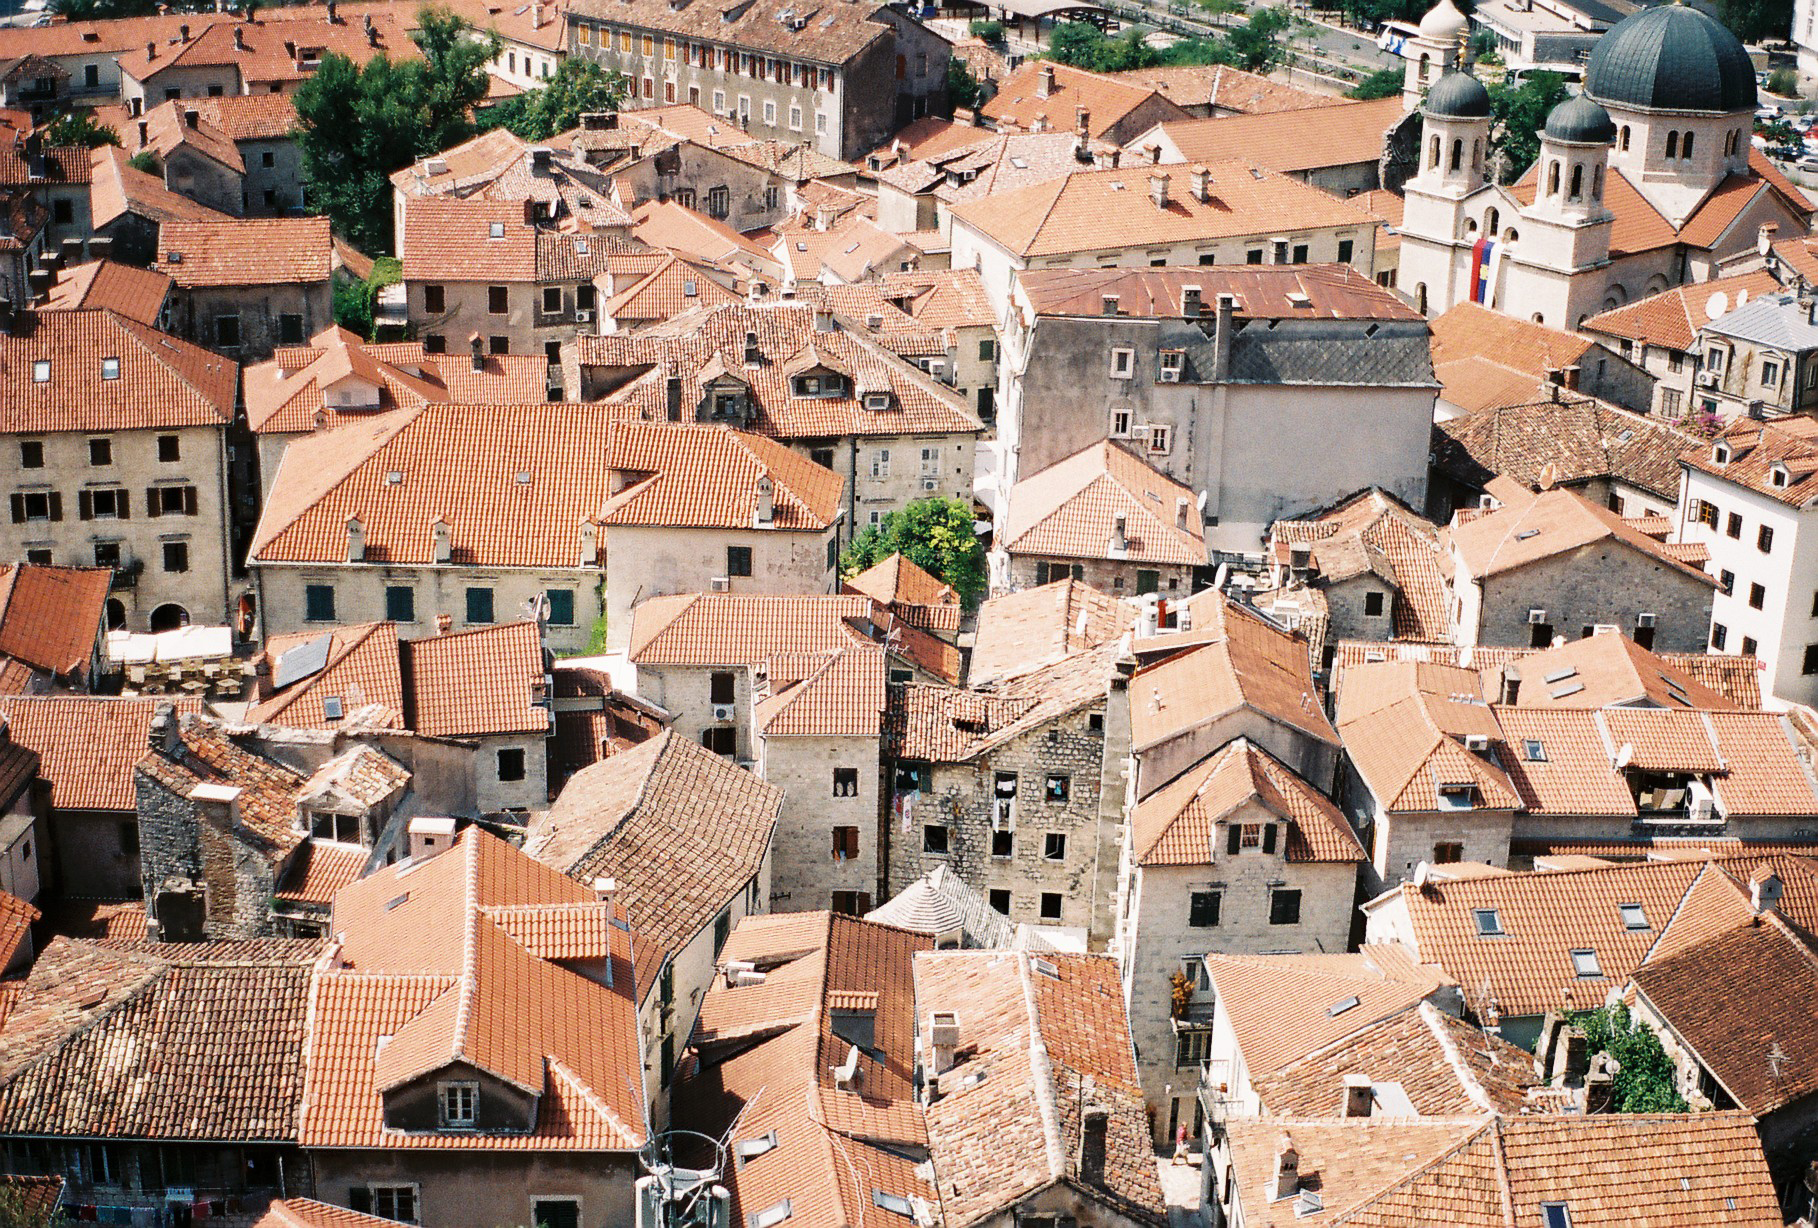 Red Roofs of Kotor